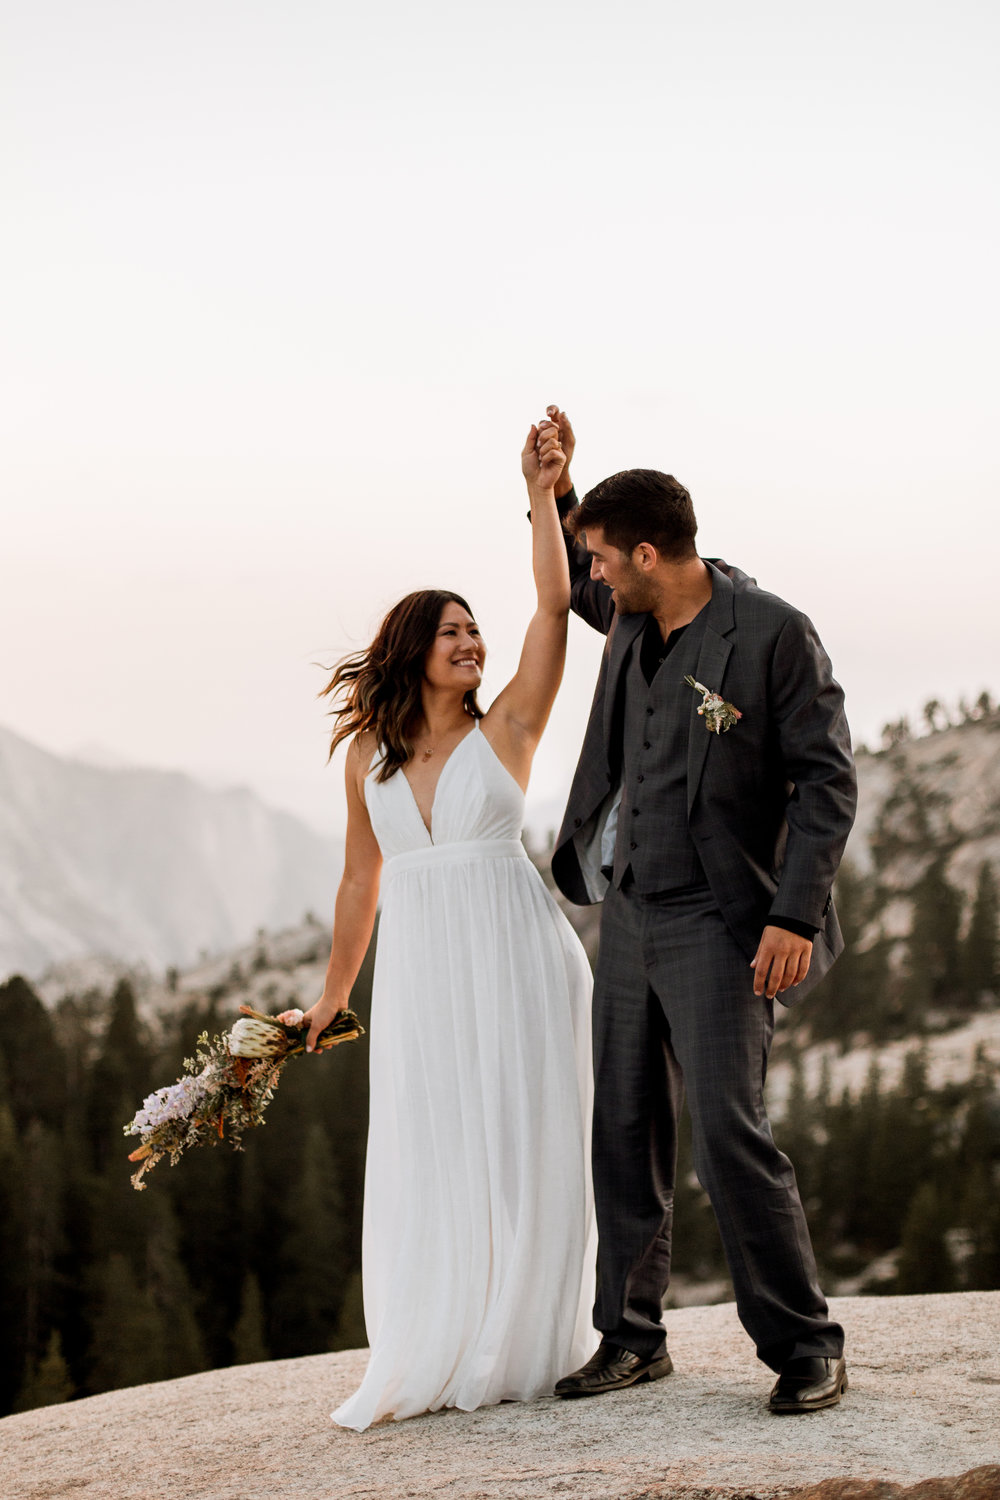 nicole-daacke-photography-yosemite-national-park-fall-elopement-adventurous-free-spirit-boho-bohemian-elopement-olmsted-point-yosemite-california-elope-adventure-elopement-photographer-62.jpg